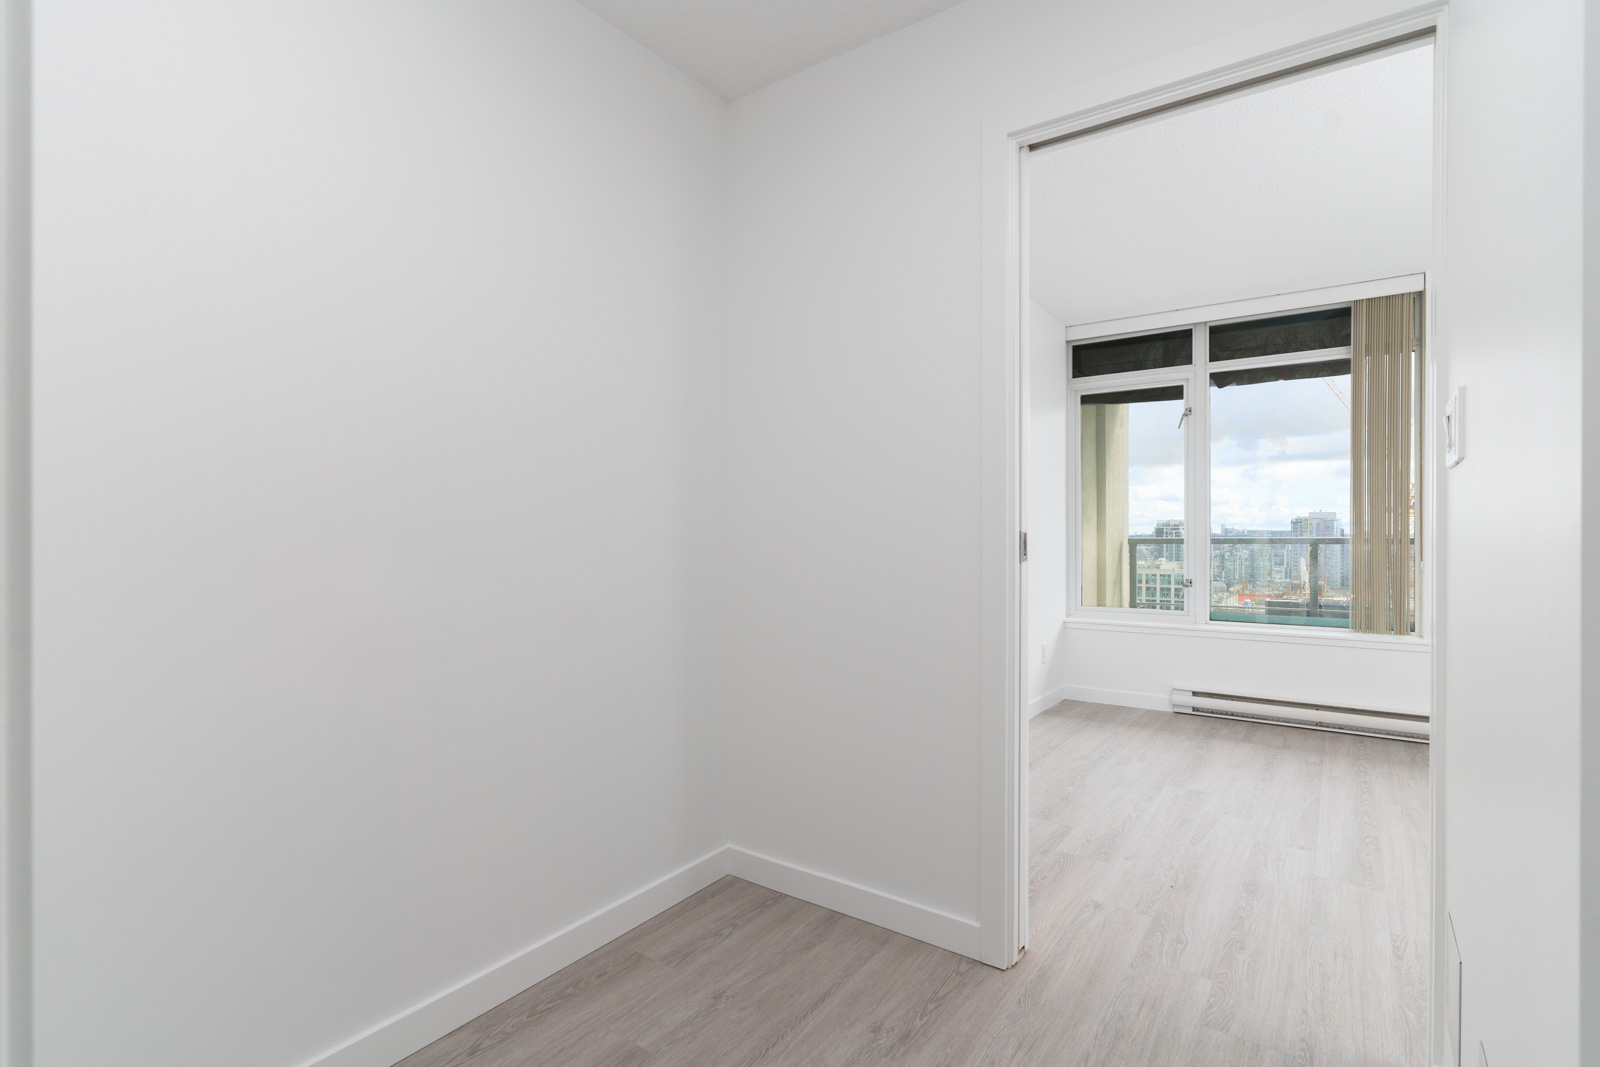 walk-in closet in bedroom in high end condo downtown Vancouver